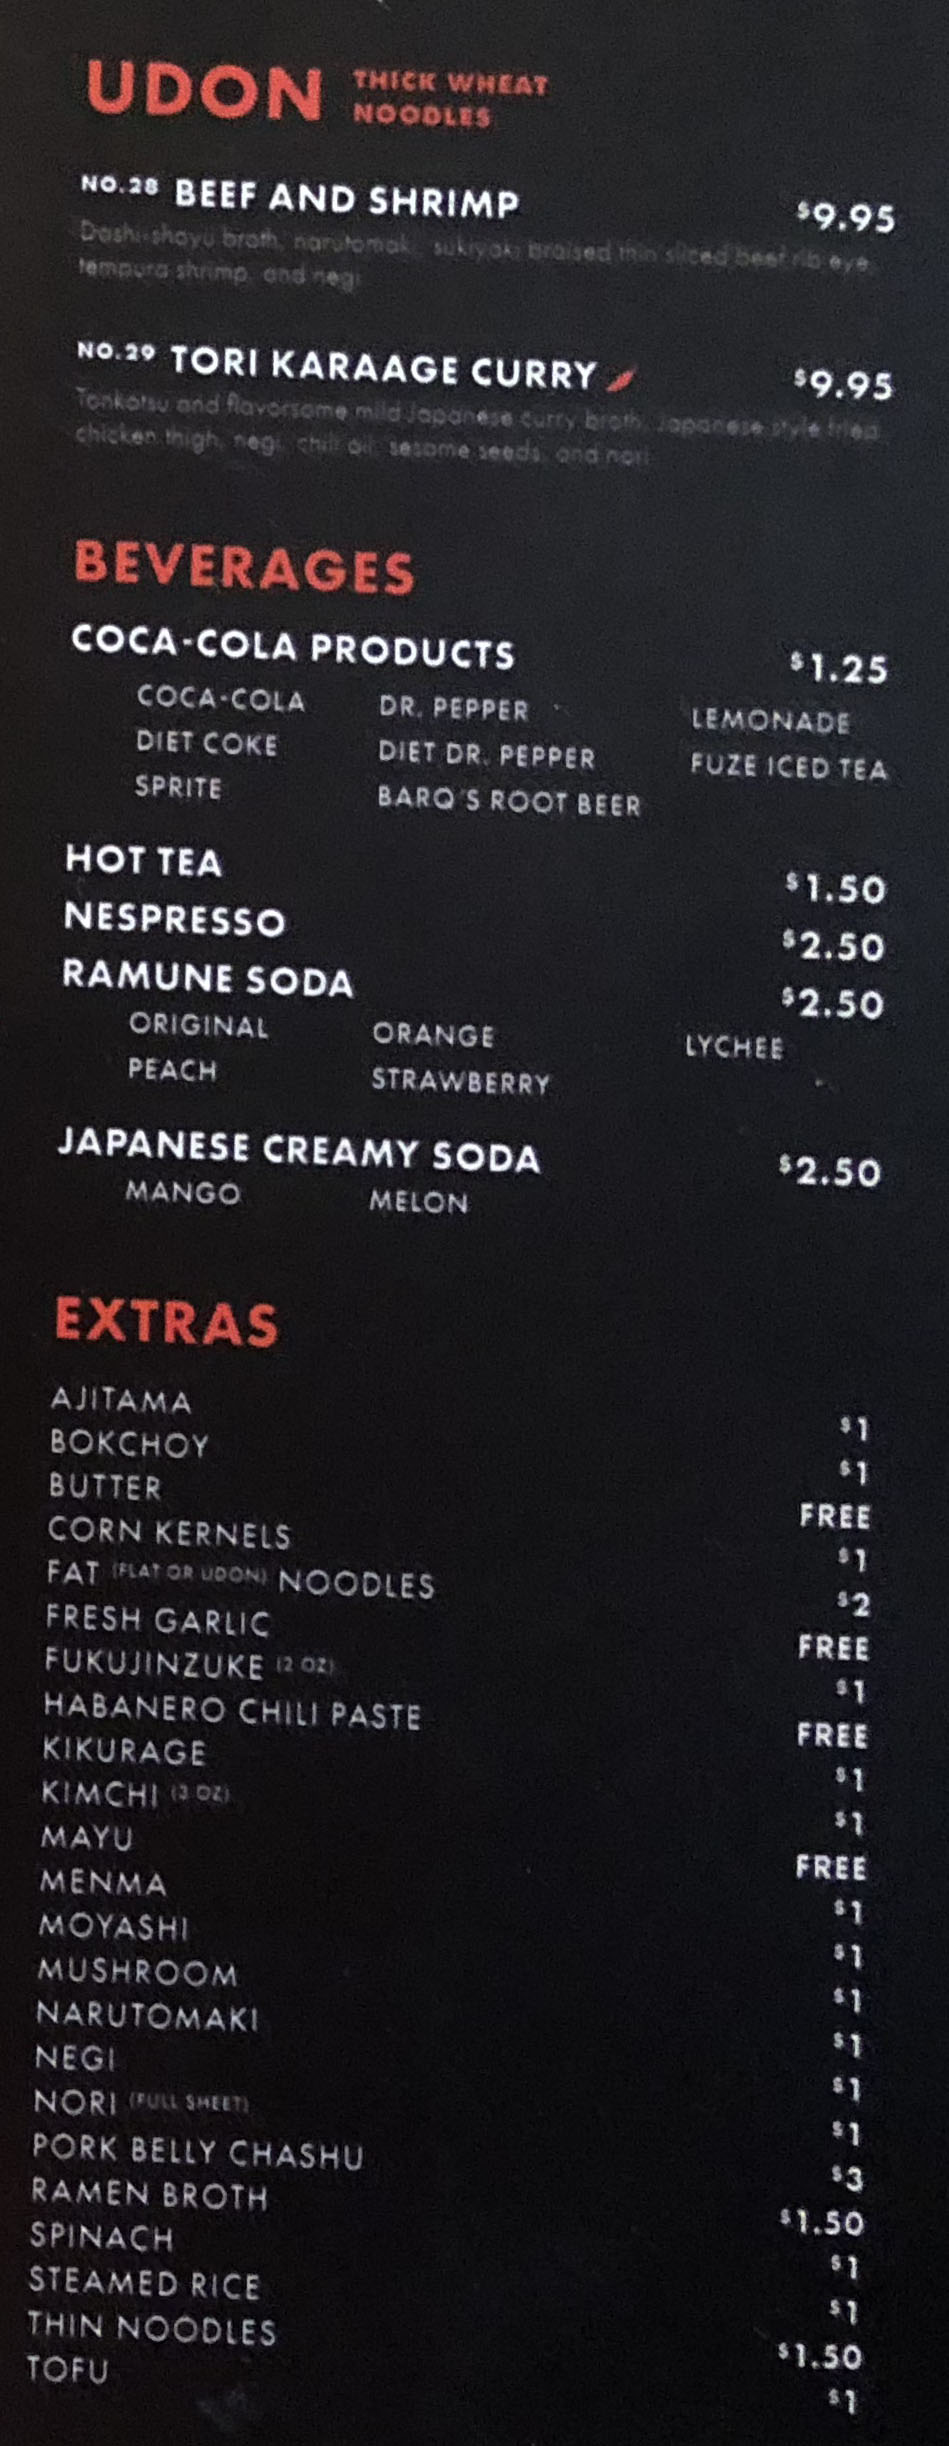 Tonkotsu Ramen Bar menu - udon, beverages, extras